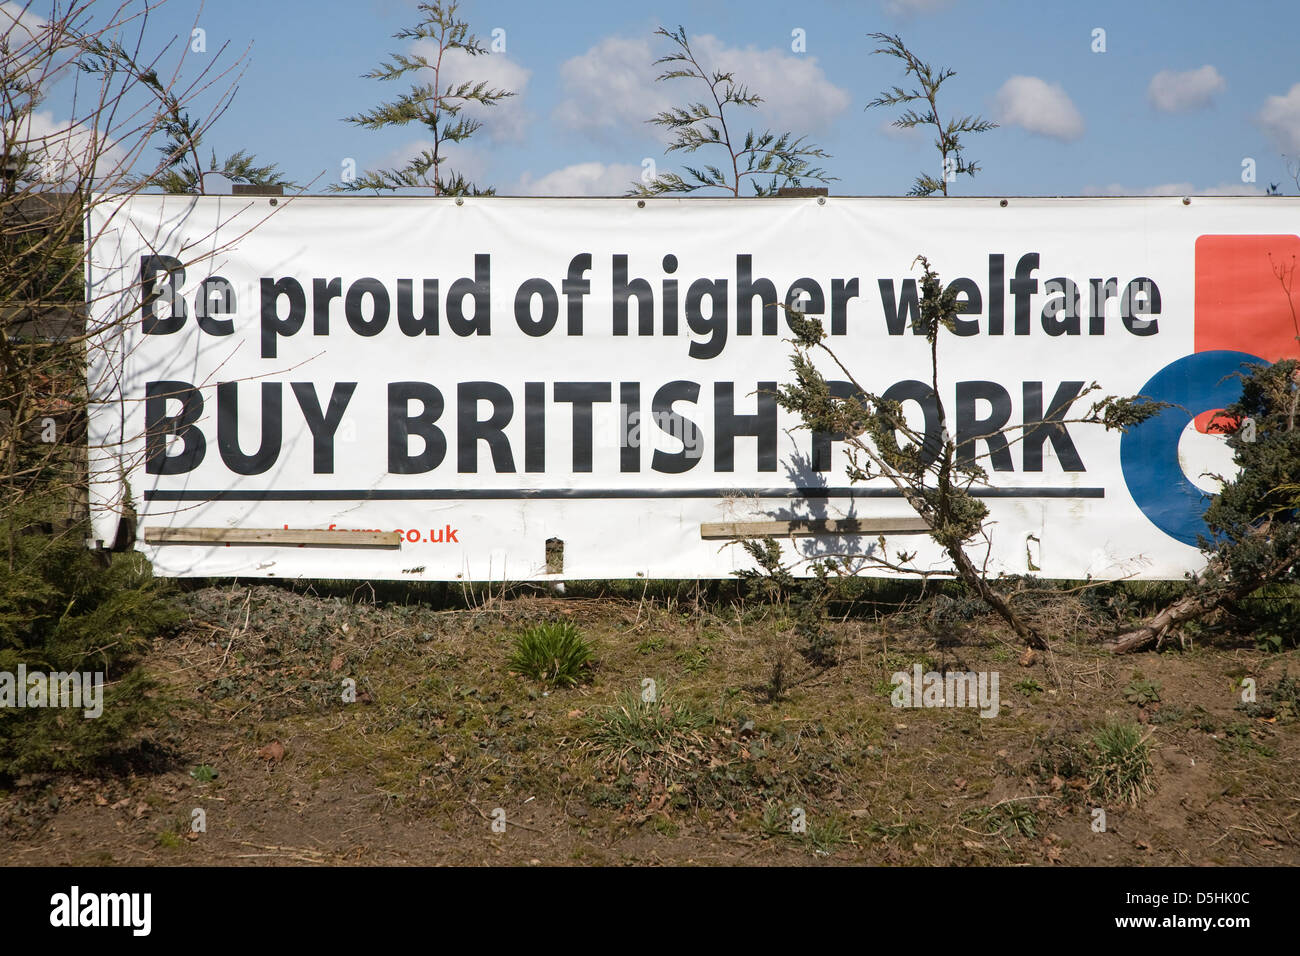 Banner advert 'Be proud of higher welfare buy British pork' Suffolk, England - Stock Image